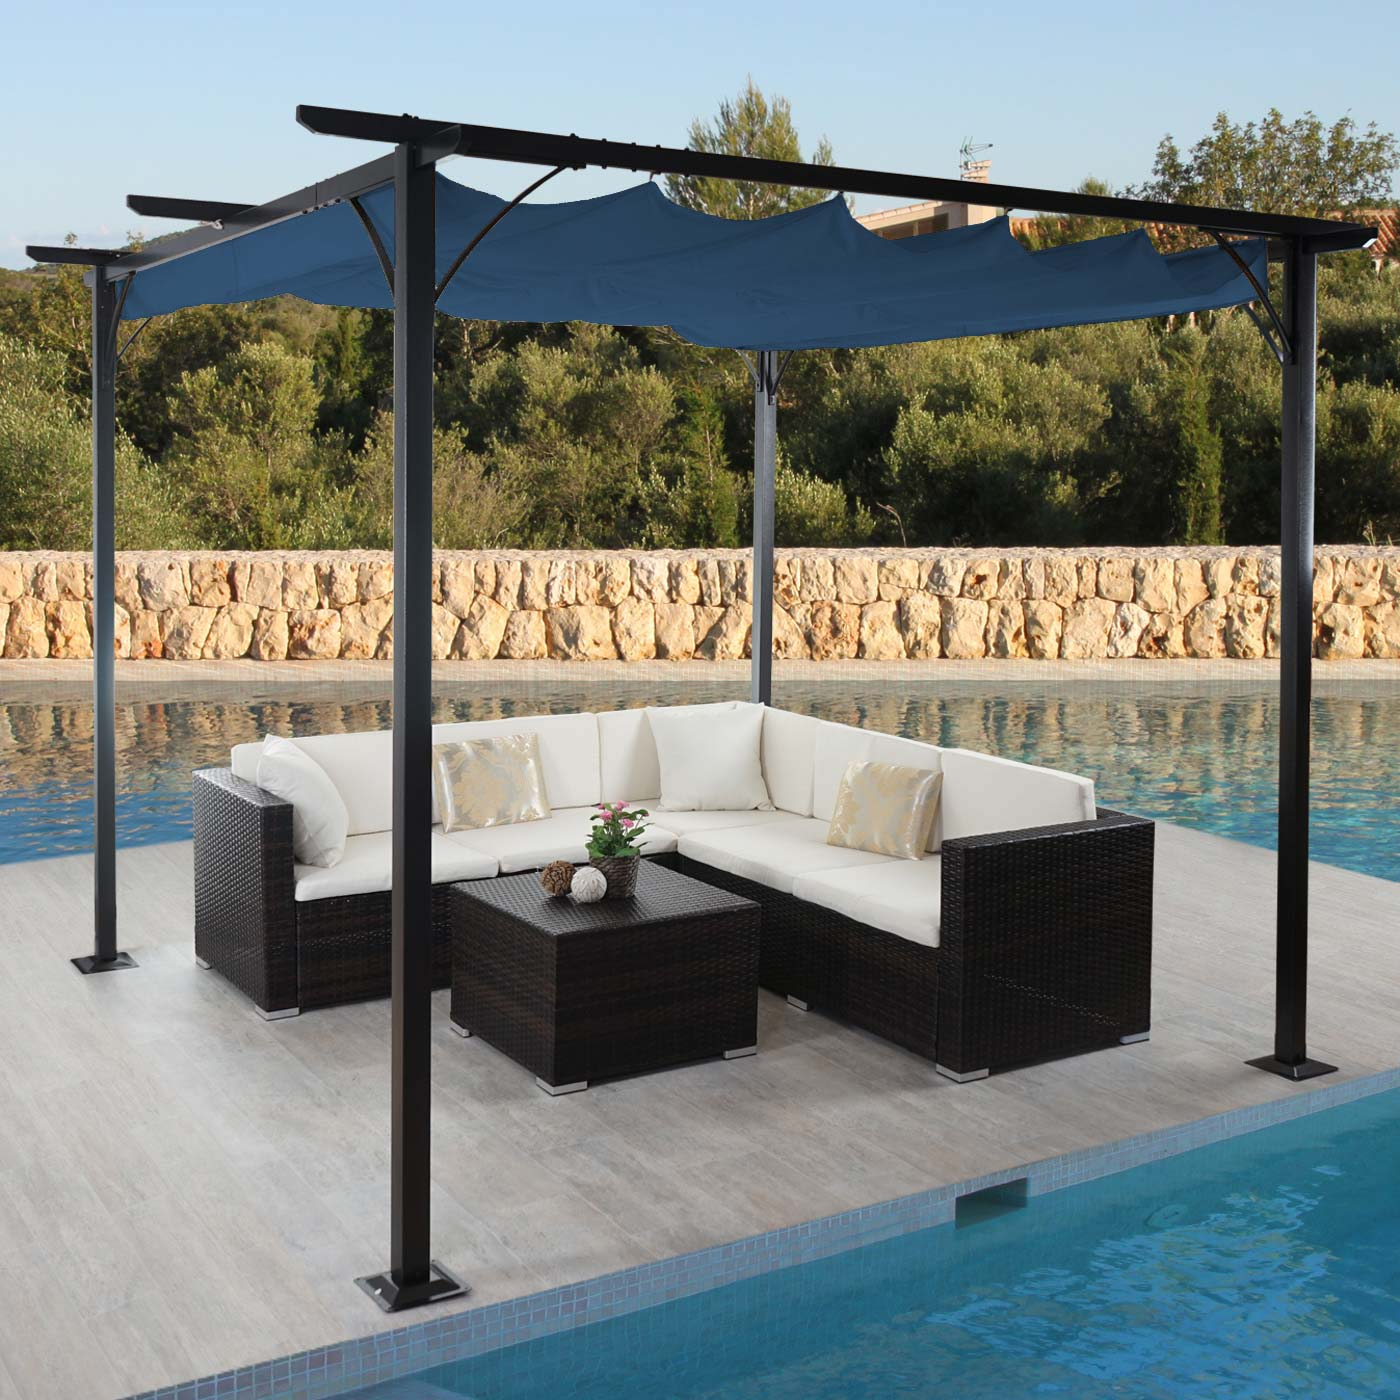 pergola avila garten pavillon 3x3m blau. Black Bedroom Furniture Sets. Home Design Ideas